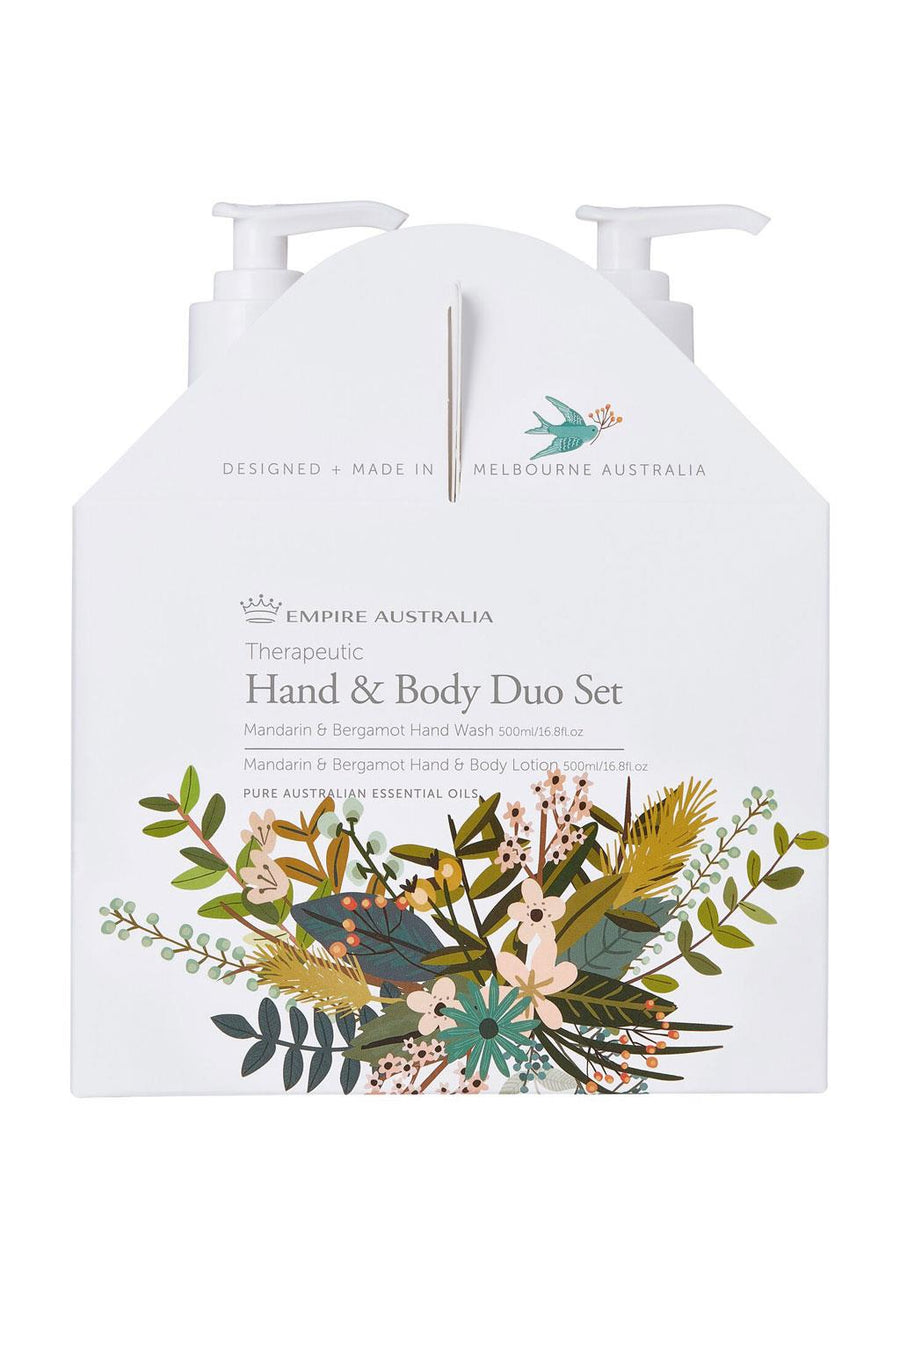 Therapeutic I Hand & Body Care Duo I Mandarin & Bergamot - Richie and Co